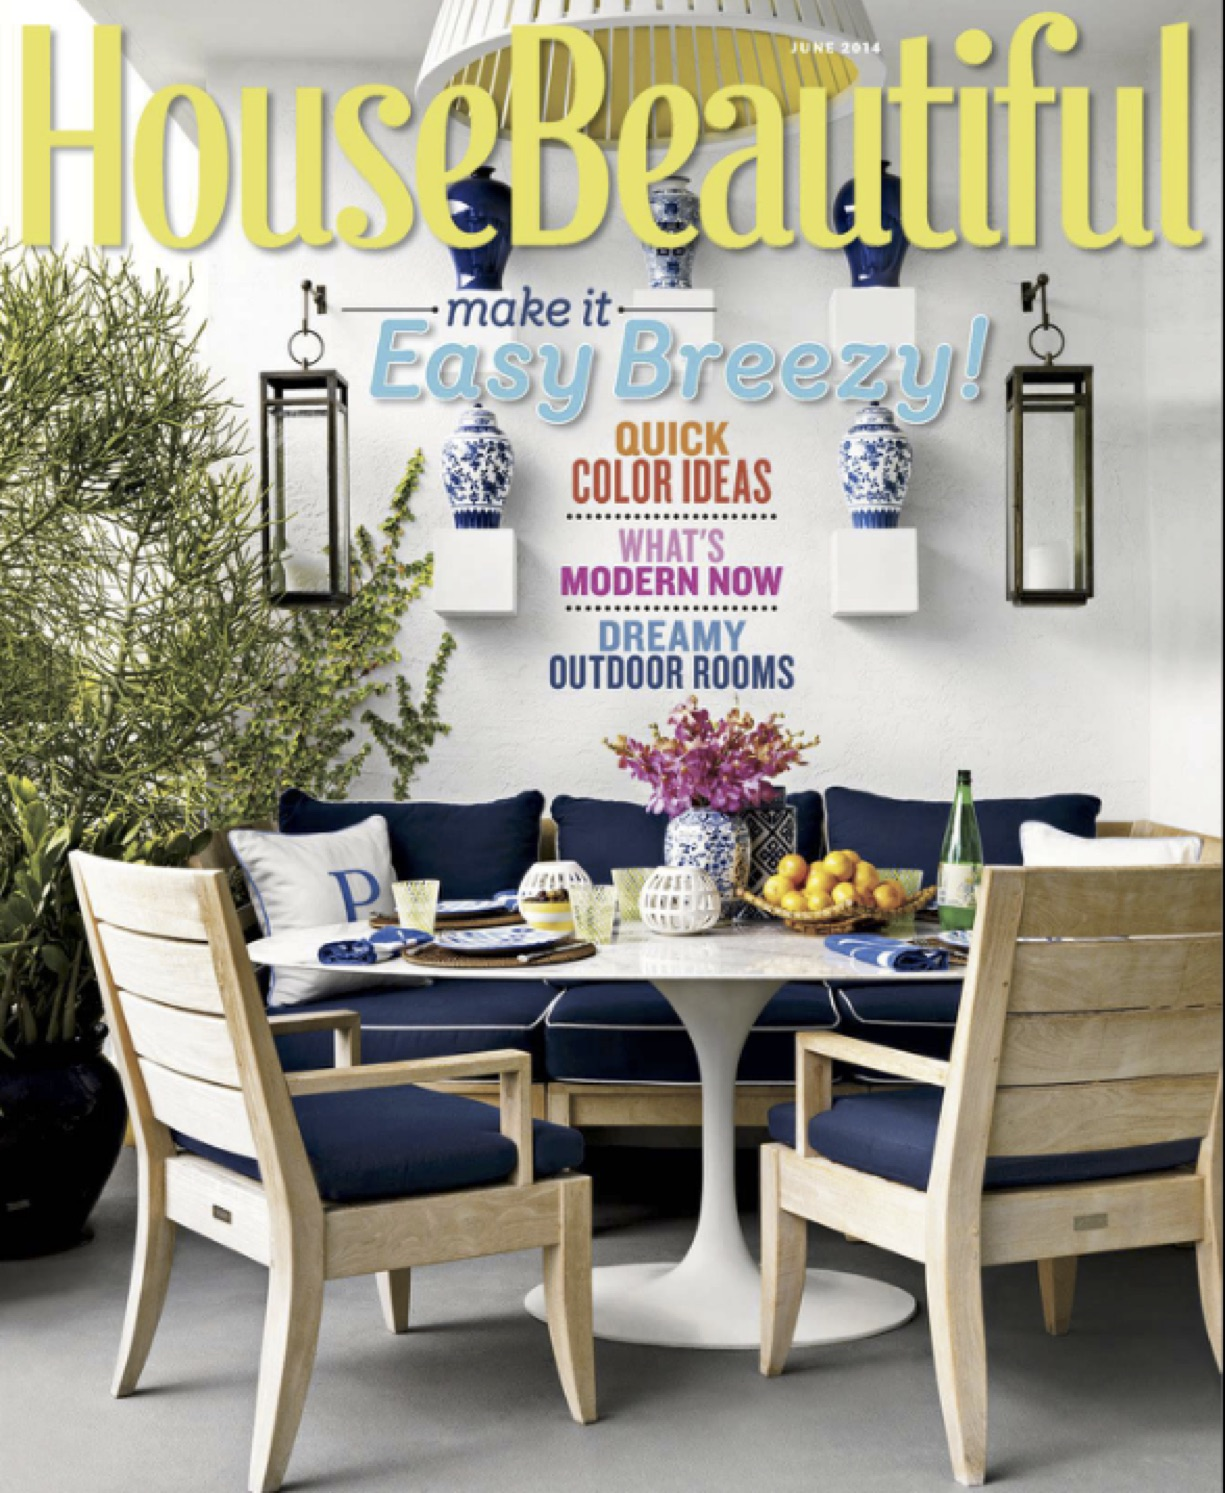 HOUSEBEAUTIFUL JUNE2014 COVER.jpg